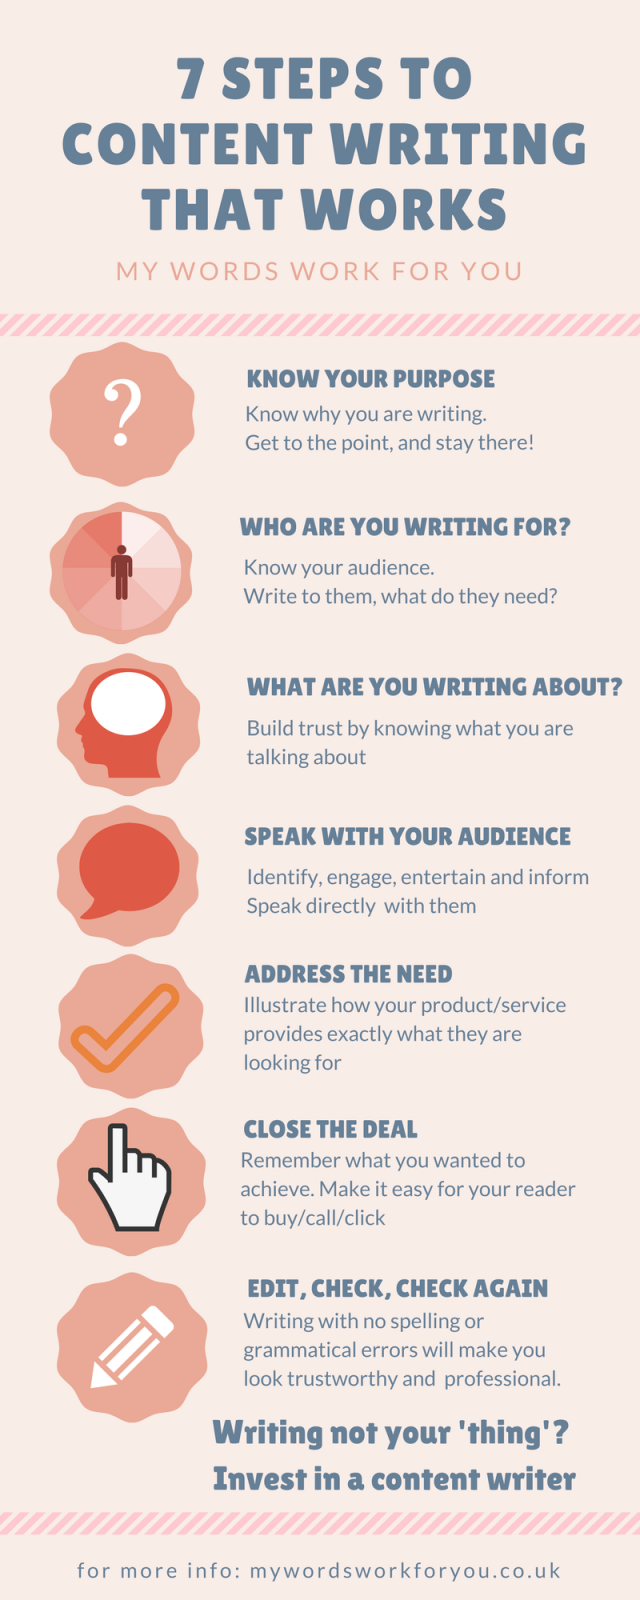 7 Steps to Content Writing That Works My Words Work For You